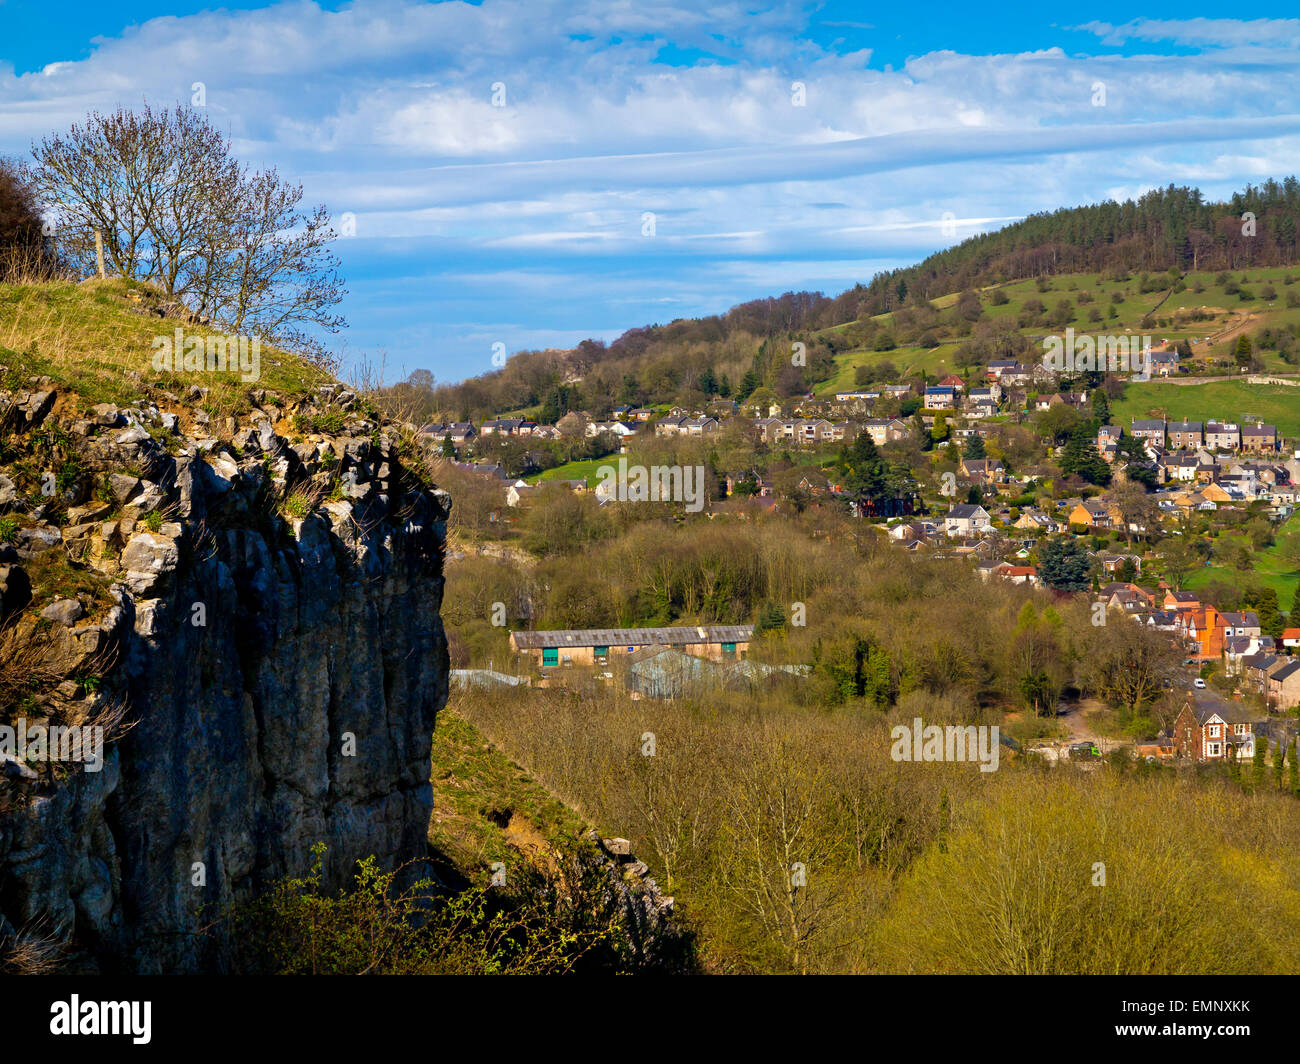 A view from Stoney Wood towards Wirksworth a market town in Derbyshire Dales Peak District England UK - Stock Image